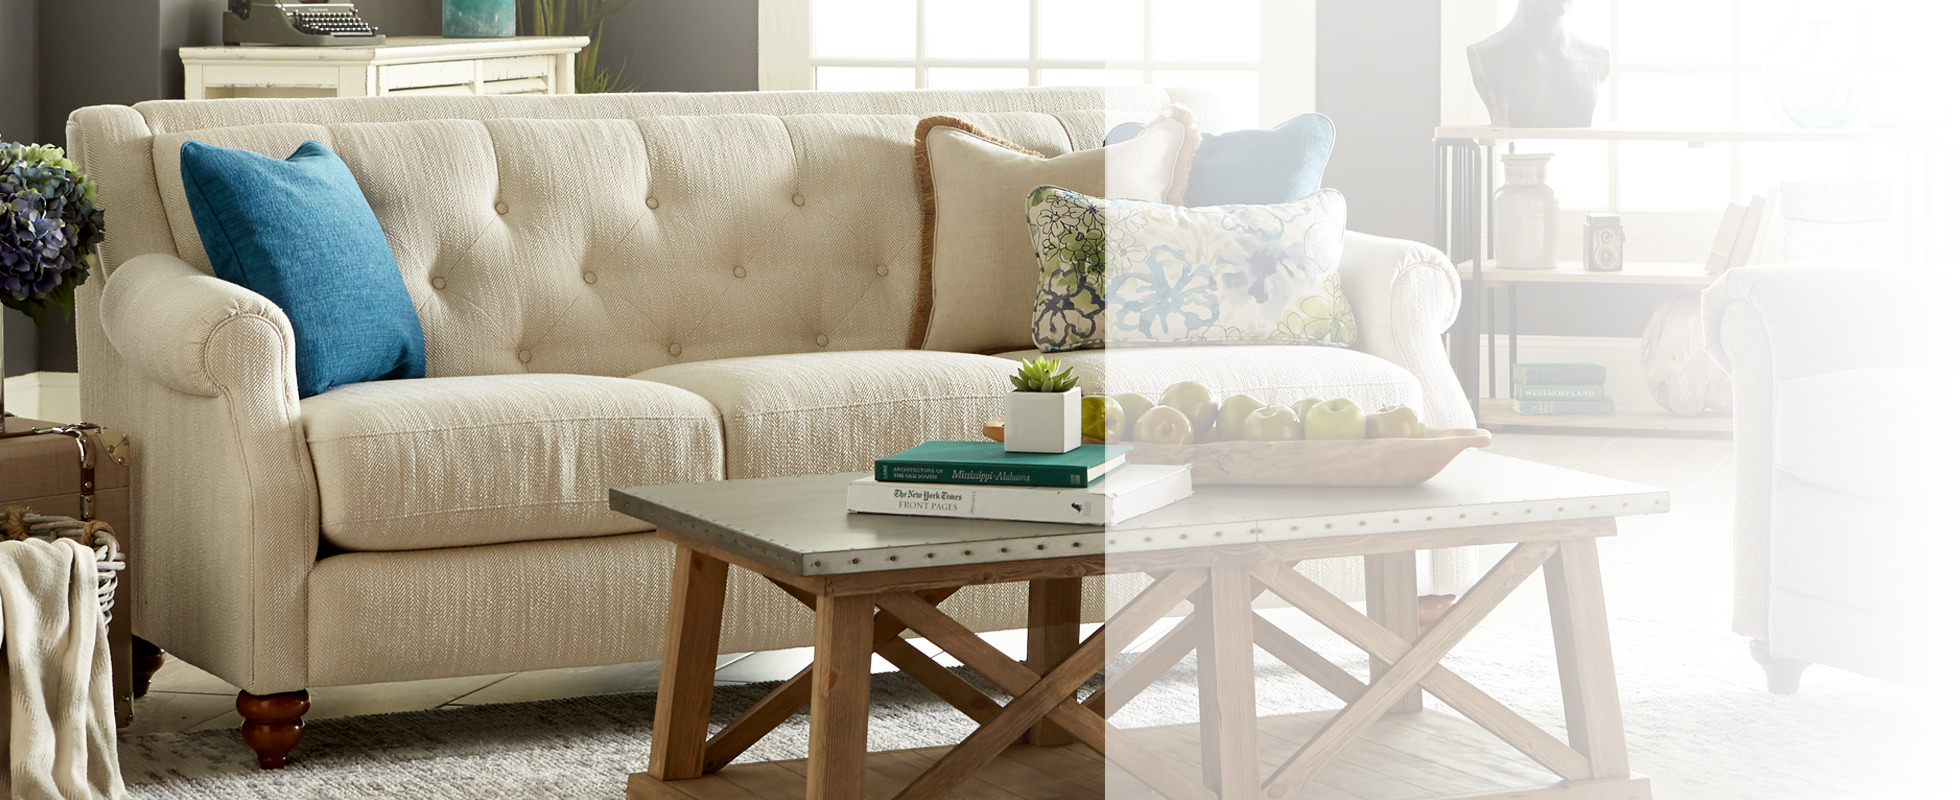 Sofa Sets & Couch Sets | La Z Boy Pertaining To Sierra Foam Ii Oversized Sofa Chairs (View 8 of 25)